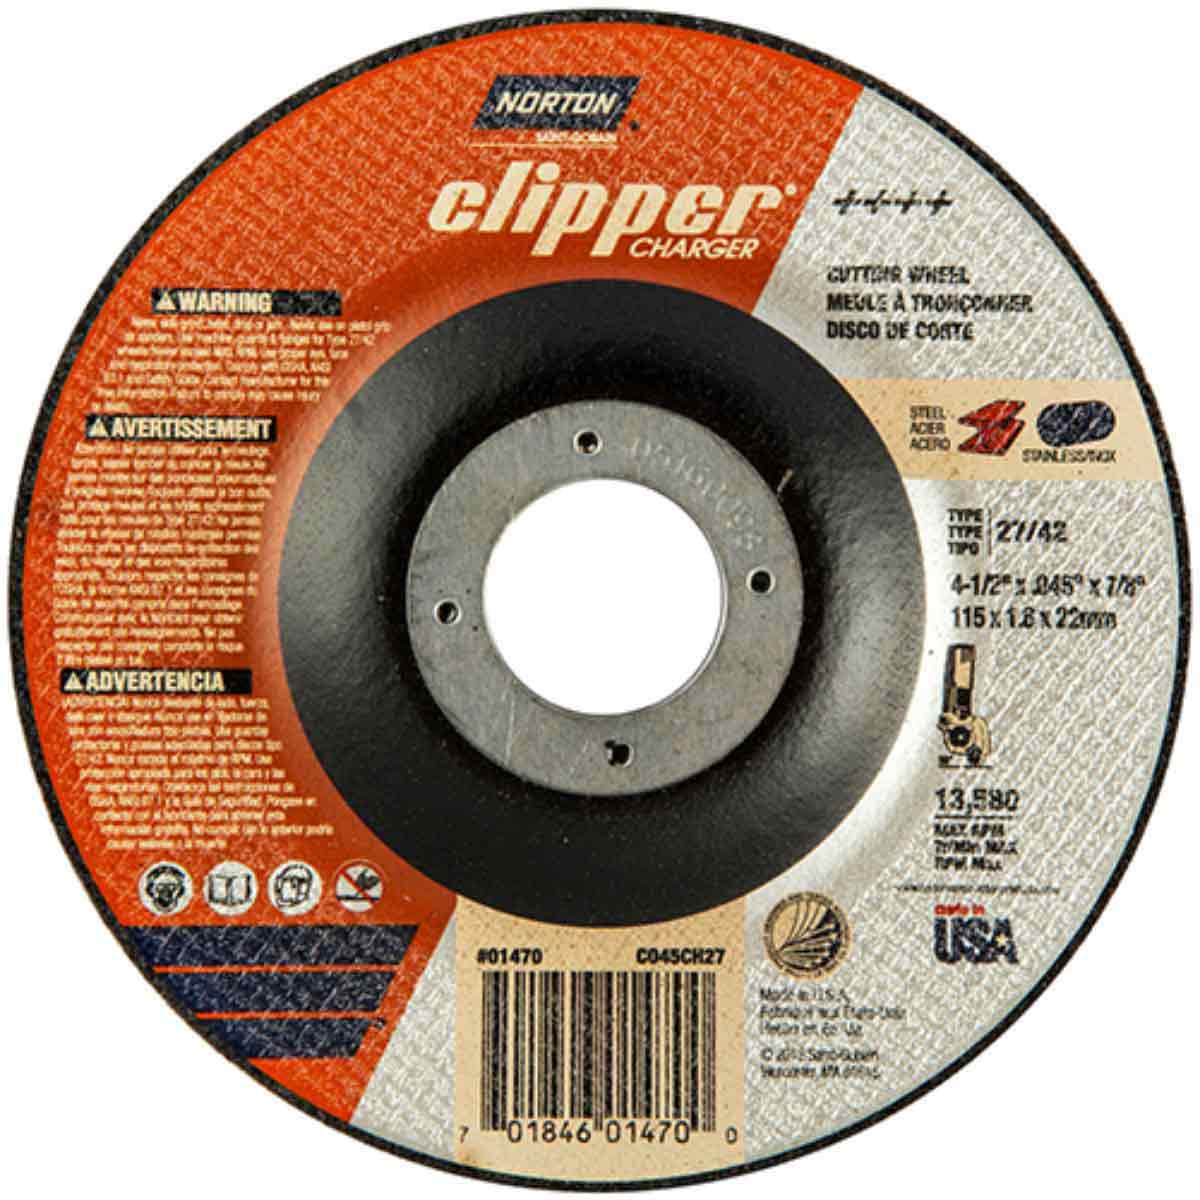 CO45CH27 Norton Charger Abrasive Type 27 Cut-Off Wheels